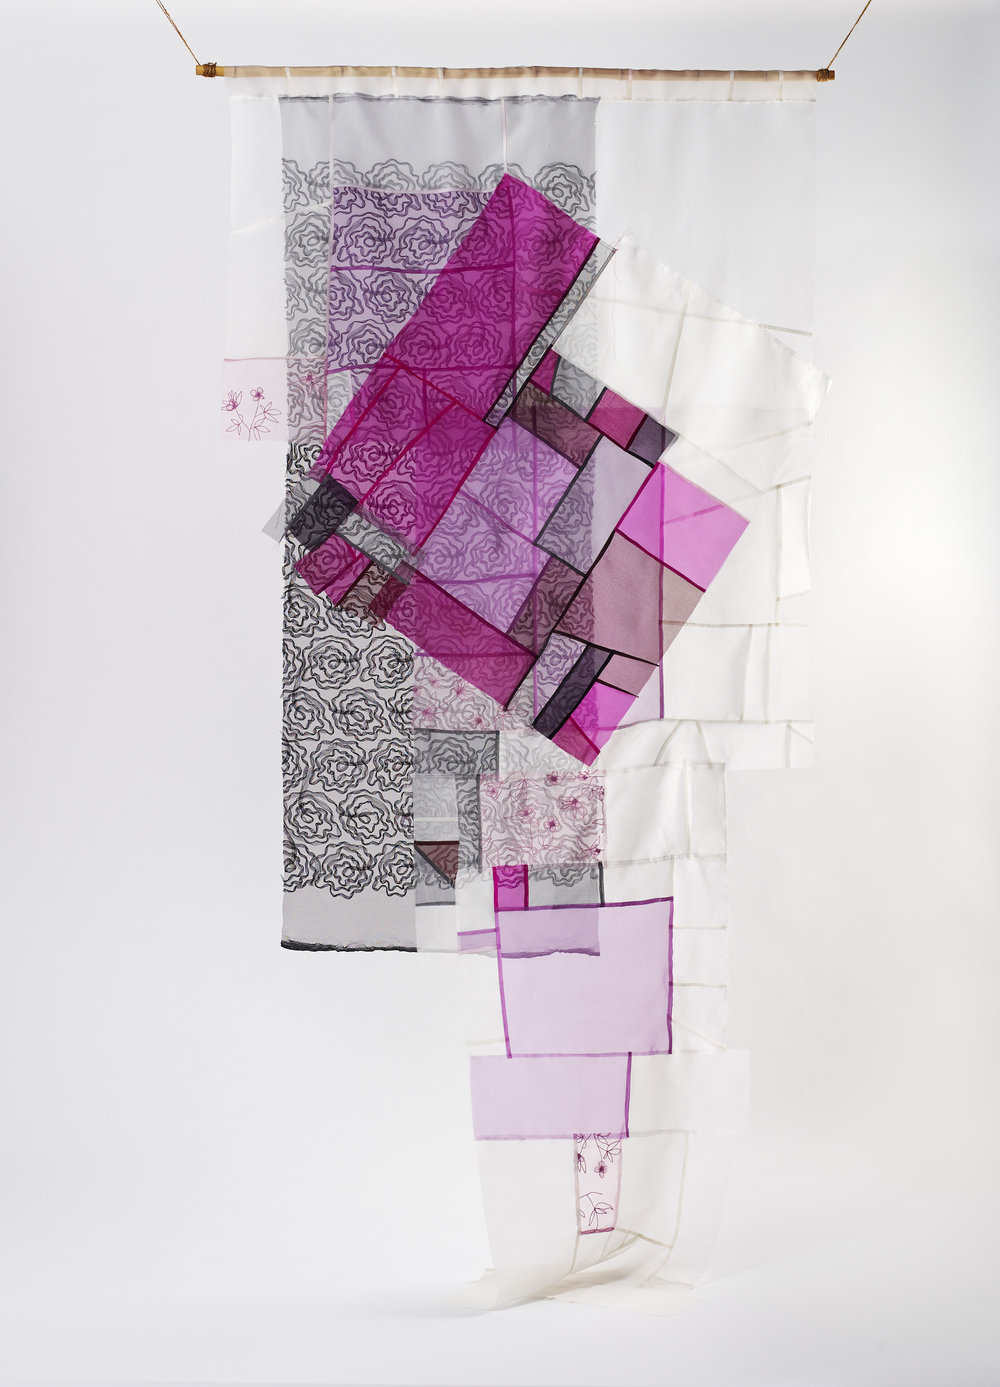 Installation view:  In the Mood for Love  (from ongoing  Bojagi  series),   2014, silk and thread, exhibited at the Korea Bojagi Forum,  From Traditional Bojagi to Contemporary Sustainable Textile , Jeju Island, South Korea